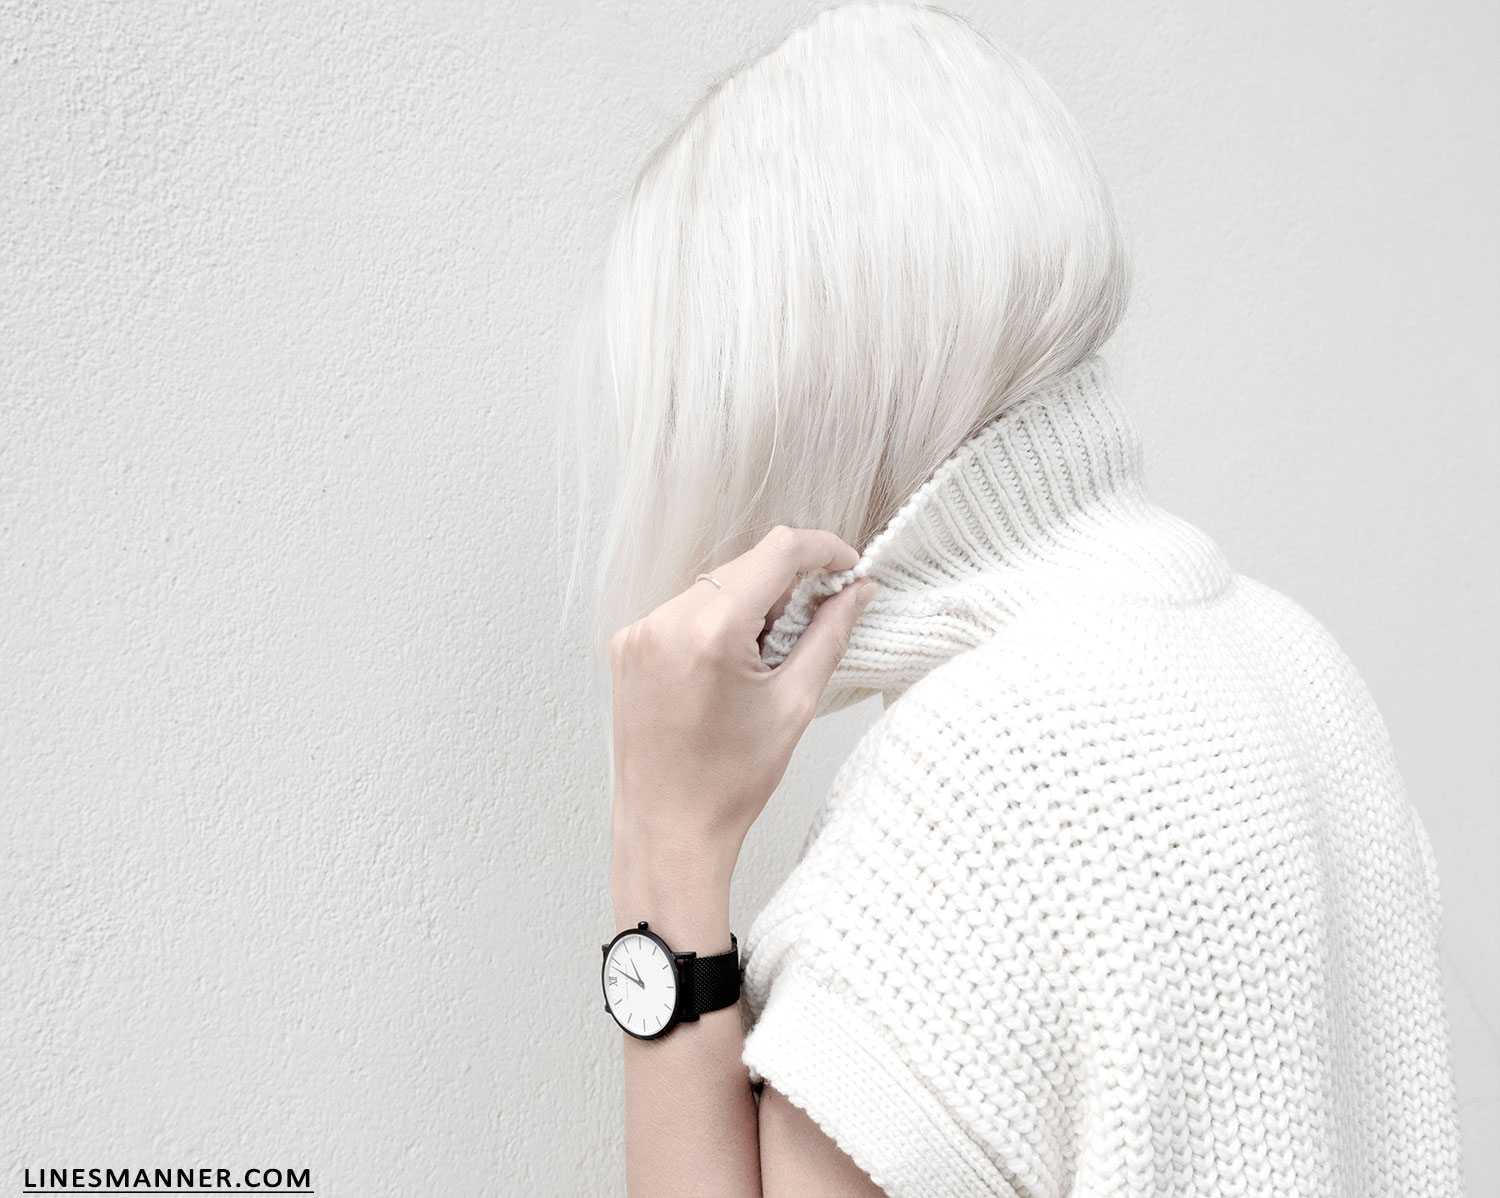 Lines-Manner-Sleeveless-Clean-Minimal-Effortless-Neutrals-Whiteout-Details-Essential-Staple-Statement_Piece-Knit-Sweater-Turtleneck-Trans_Seasonal-Larsson_And_Jennings-Warm-8